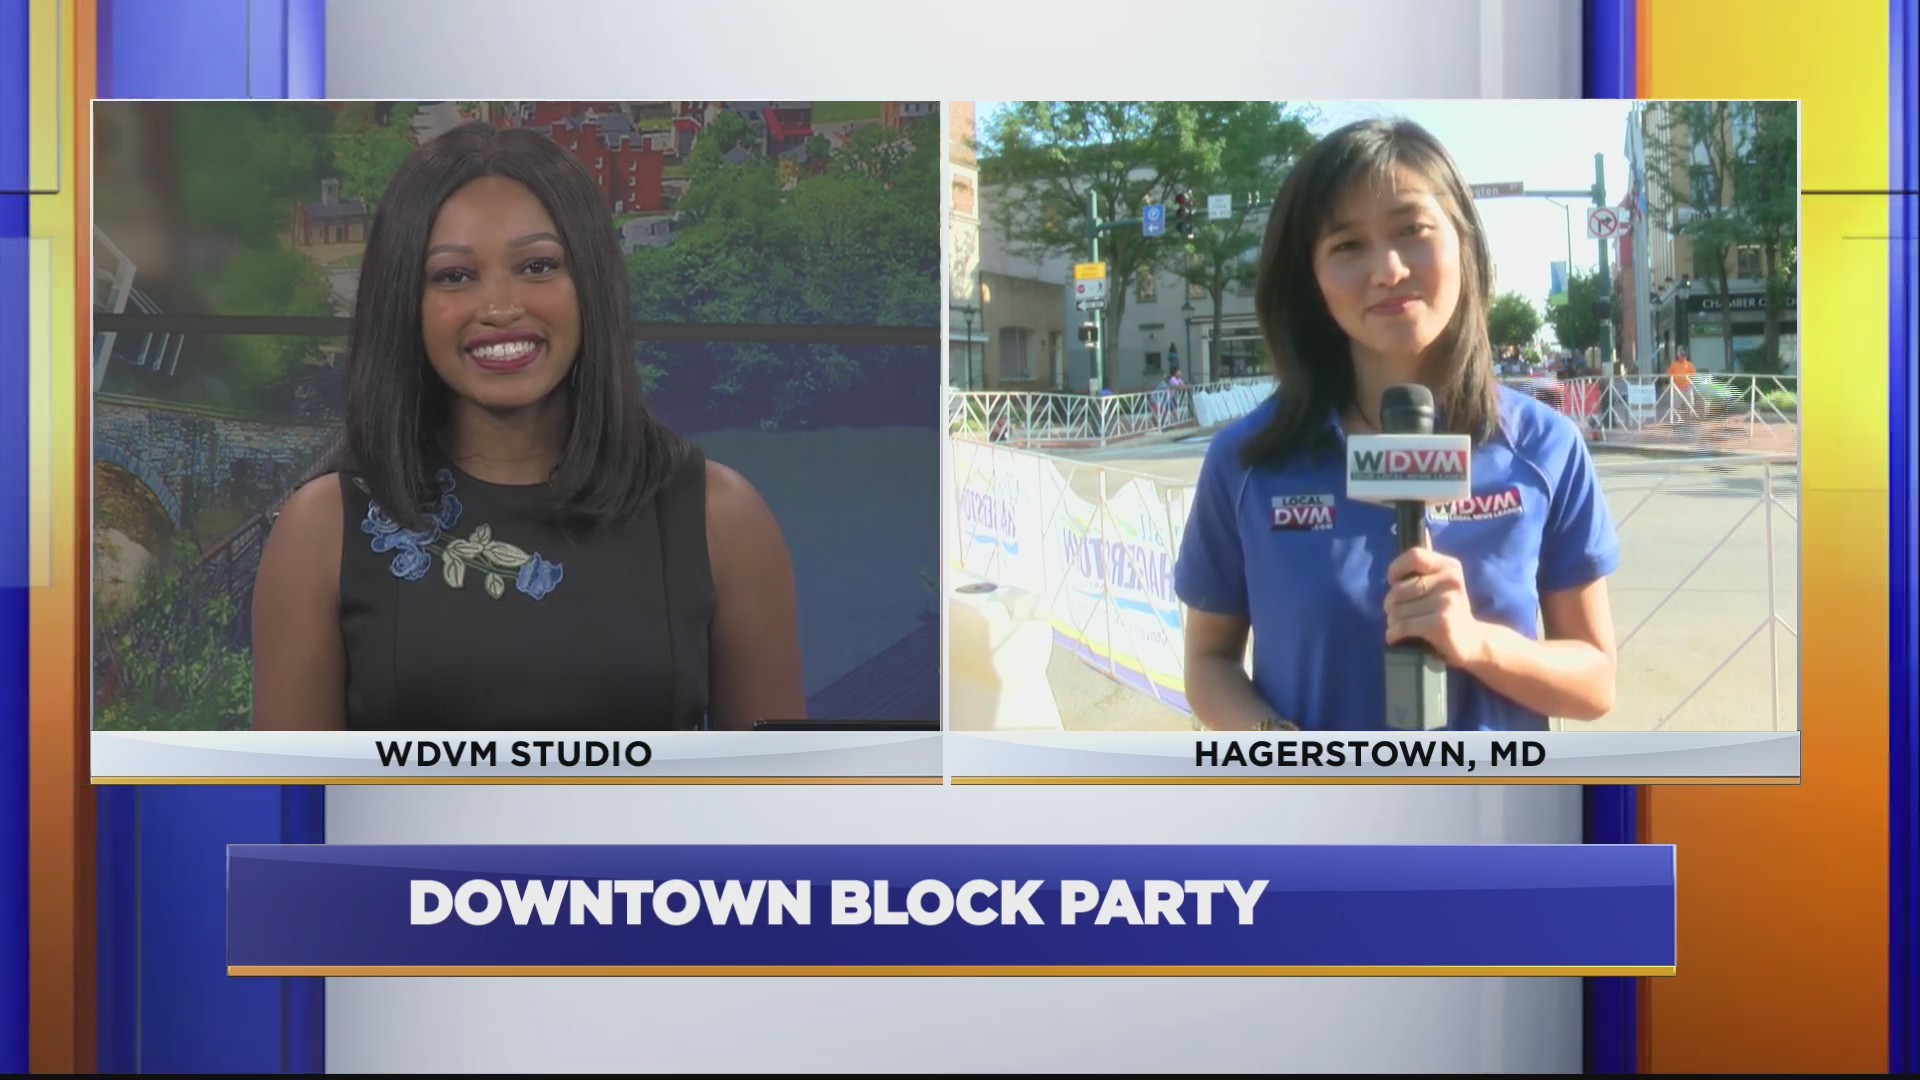 HAGERSTOWN BLOCK PARTY